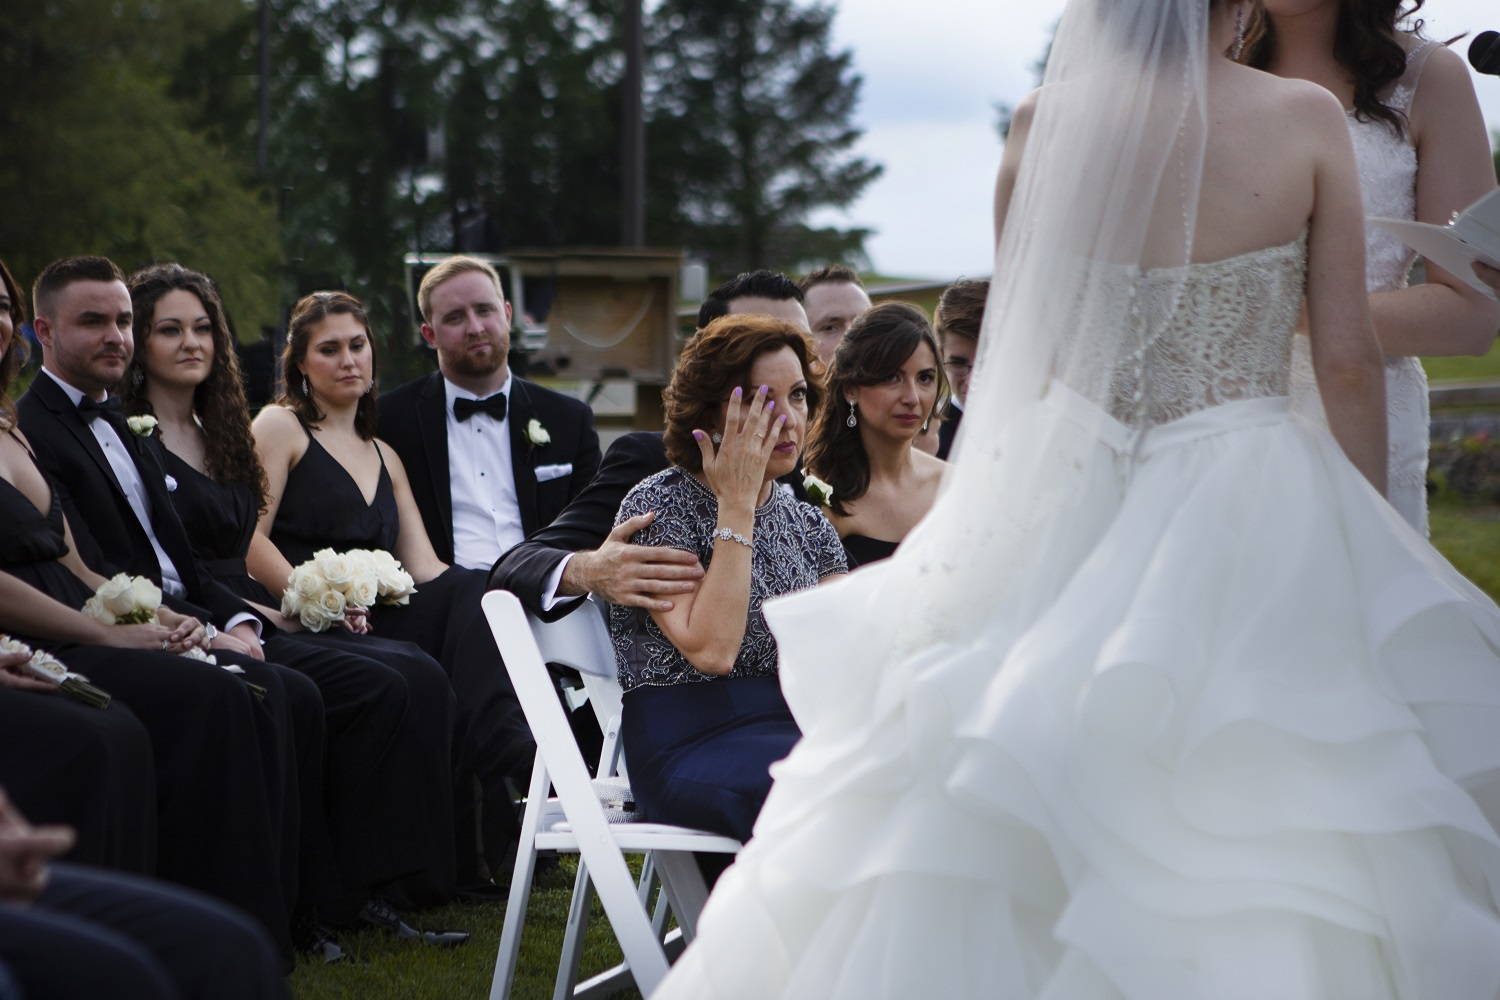 nj-wedding-photographers-cailin&graciela-guest-watching-couple-at-altar-crying-ceremony